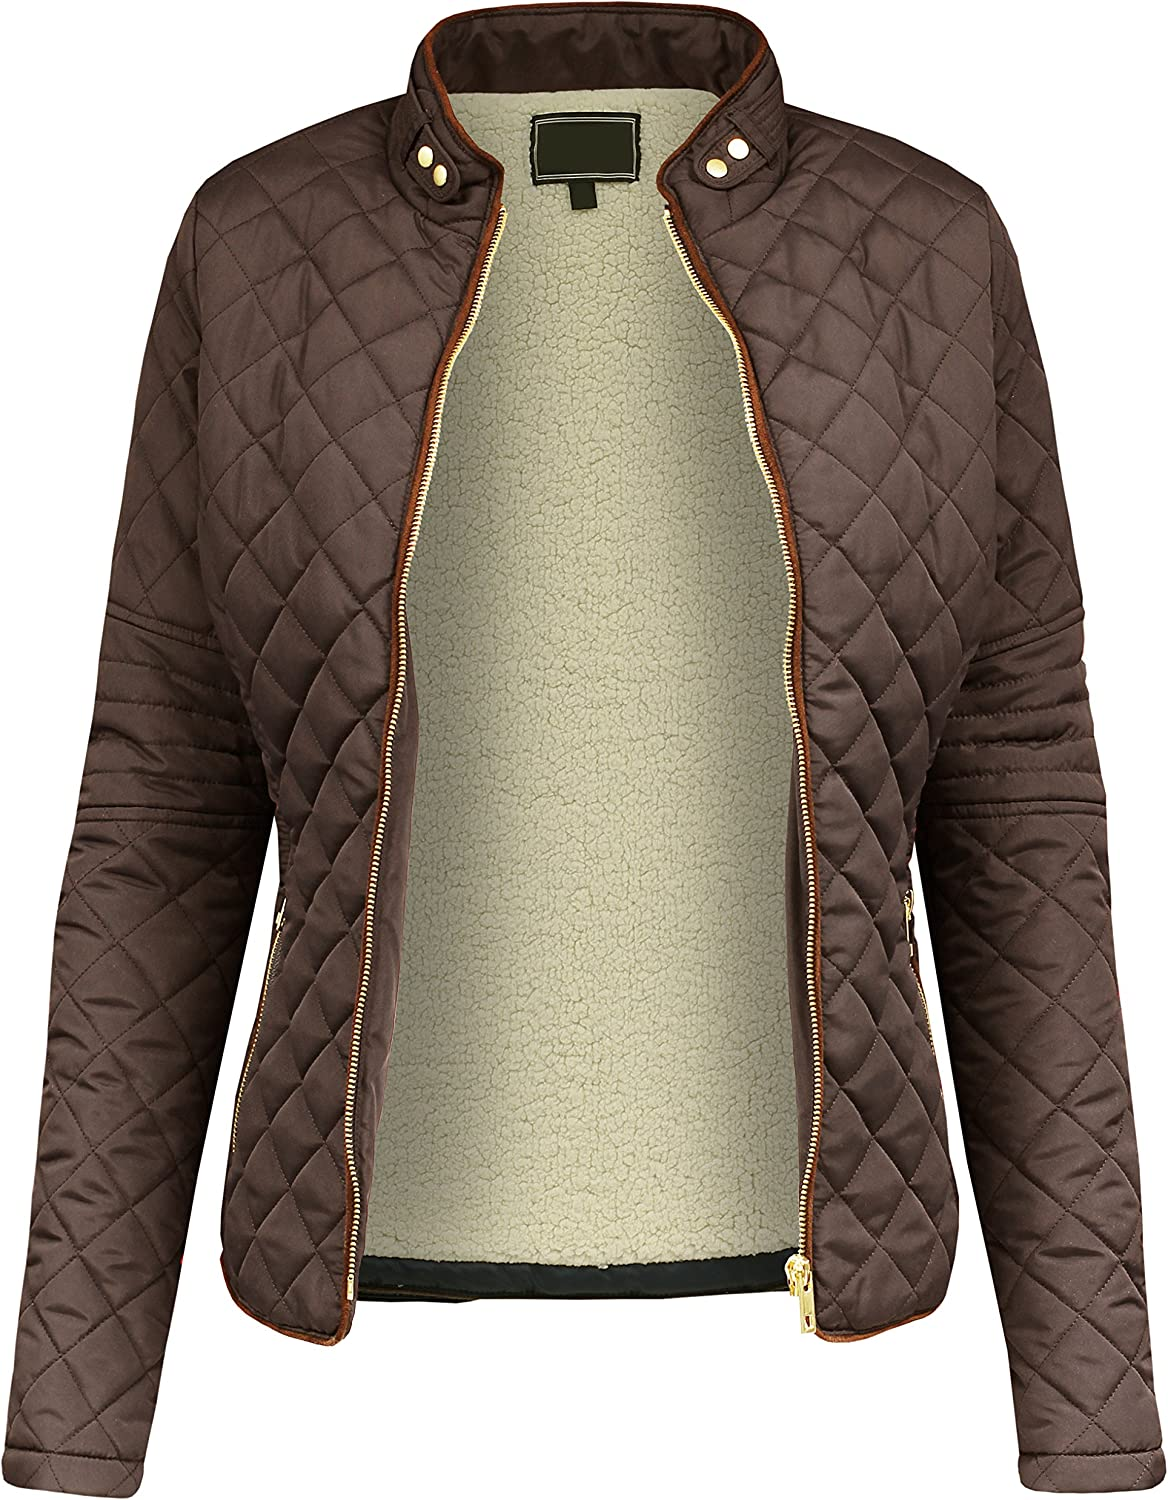 BEKDO Womens Cozy Fashion Faux Fur Lined Quilted Long Sleeve Zip Up Jacket